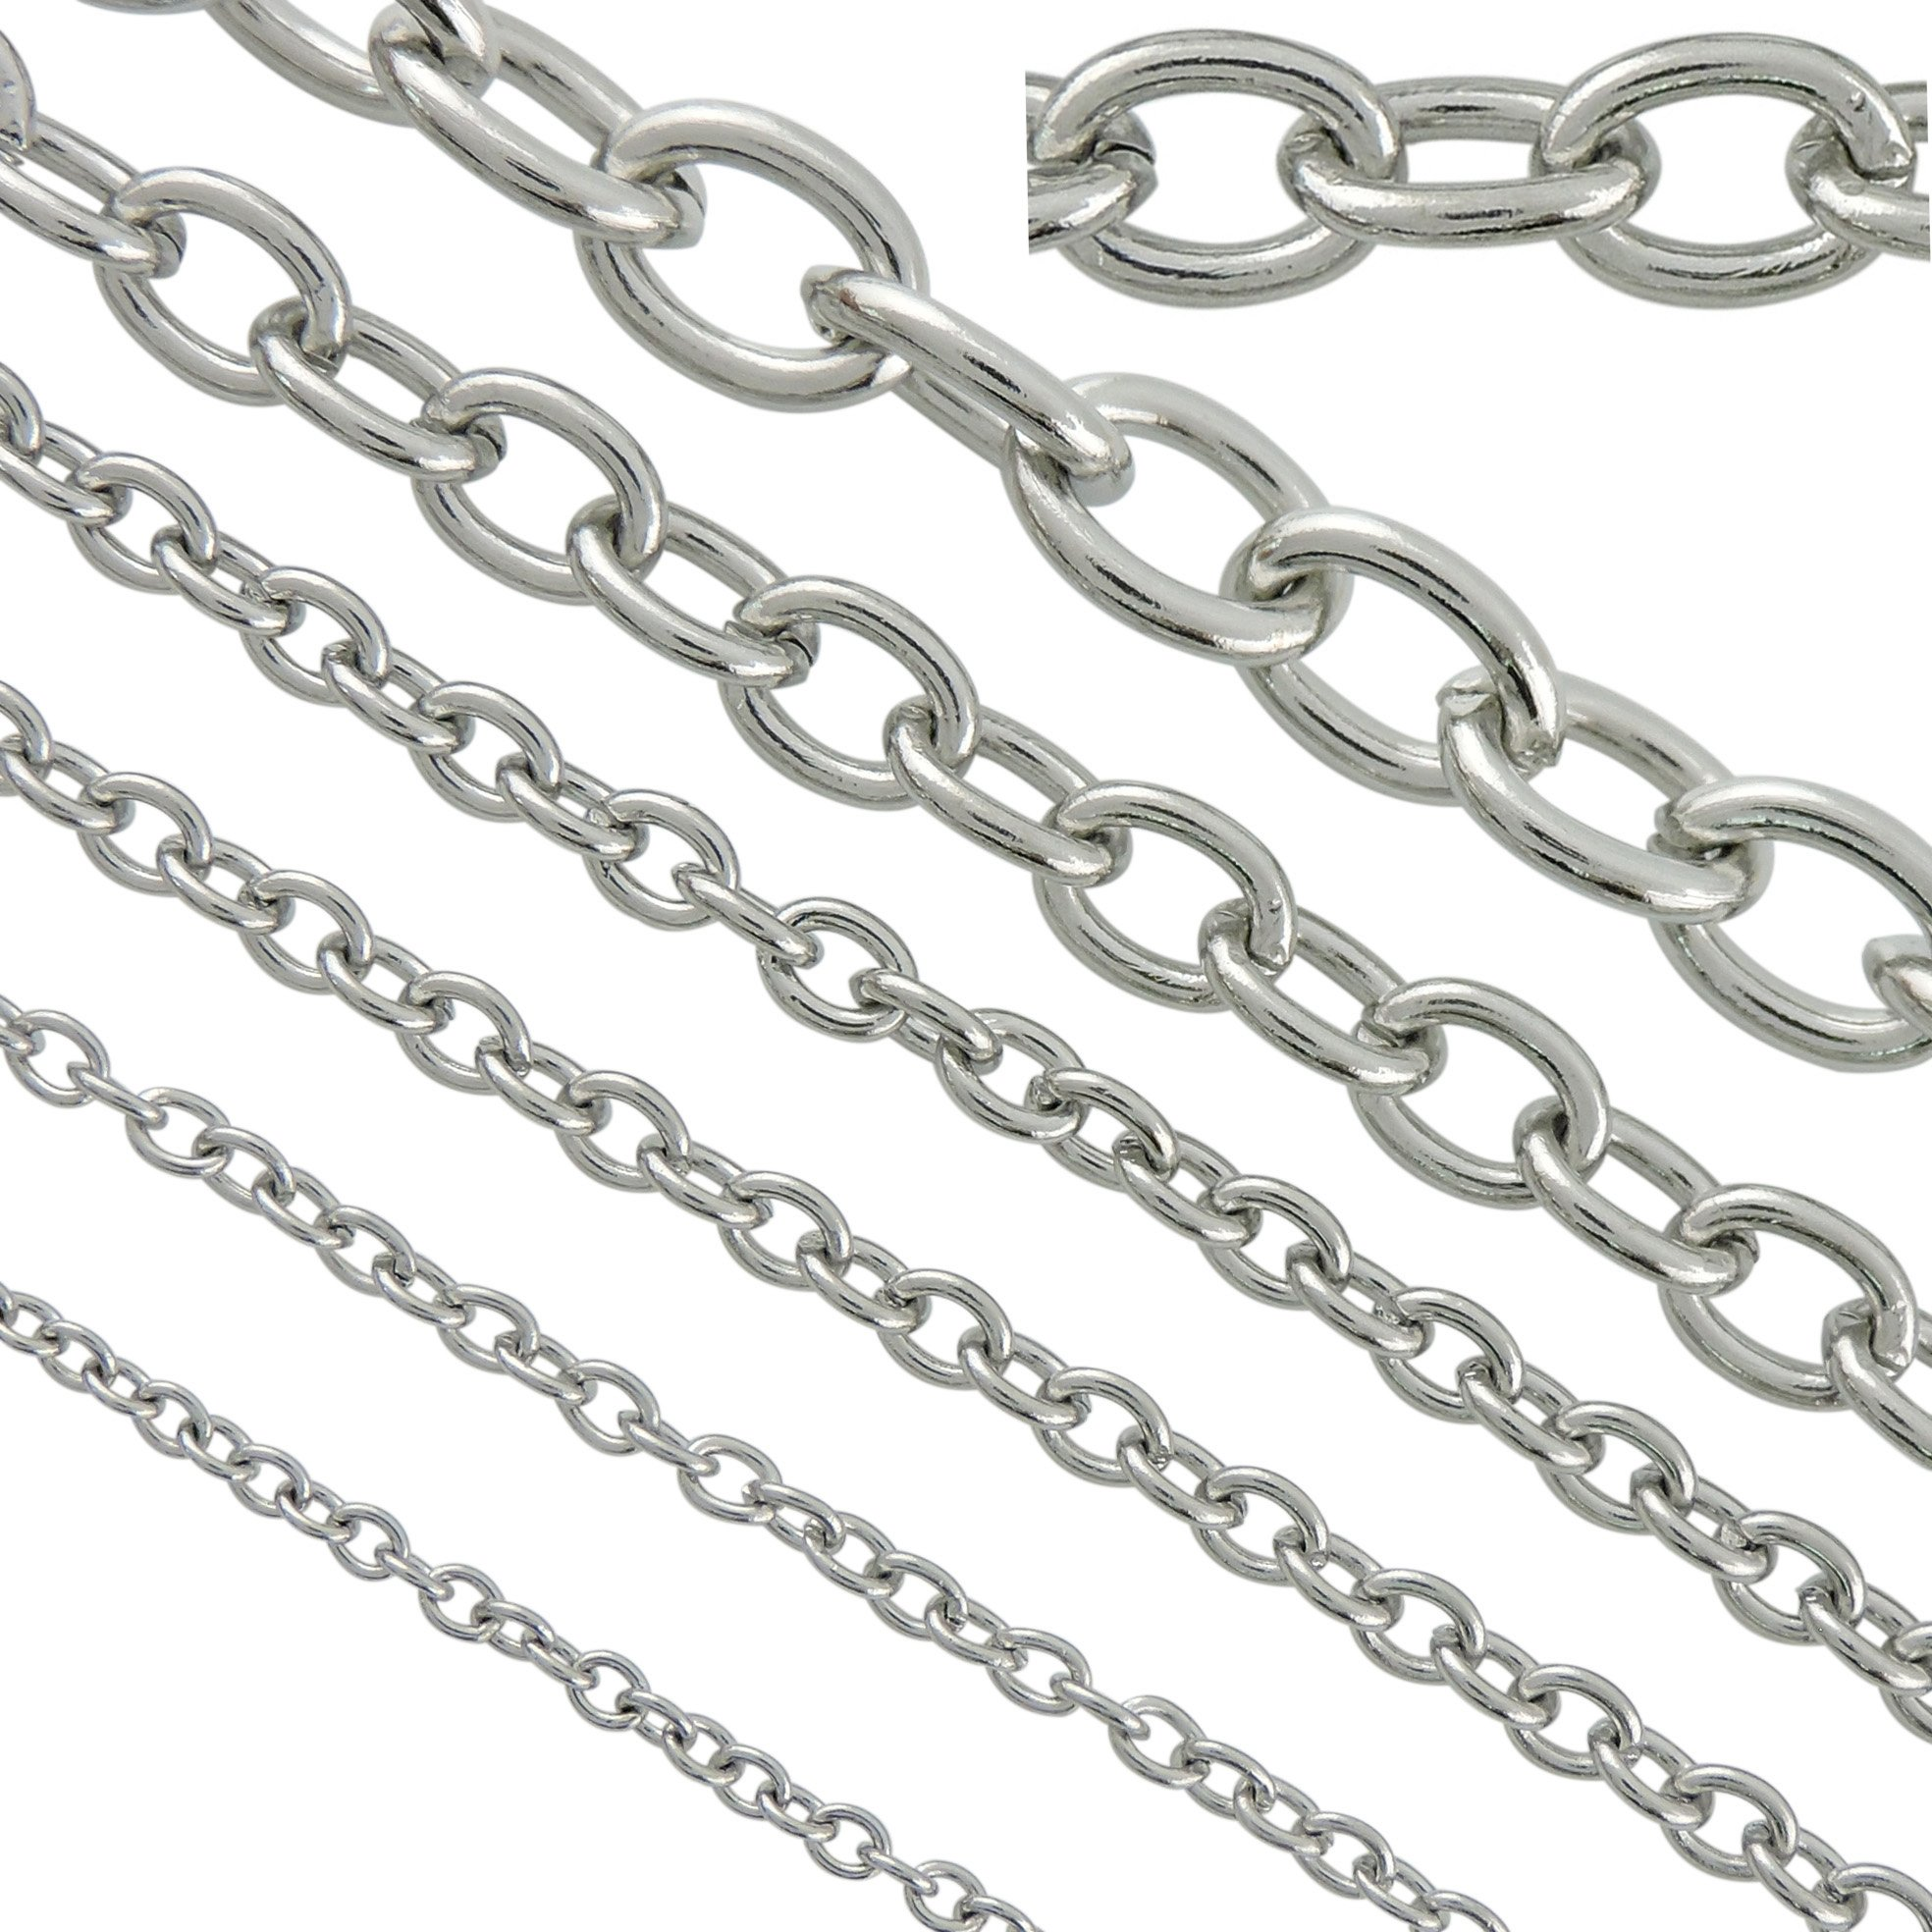 Stainless Steel Chains Findings Fit for Jewelry Making &DIY (SC-1027-3E) by Belle